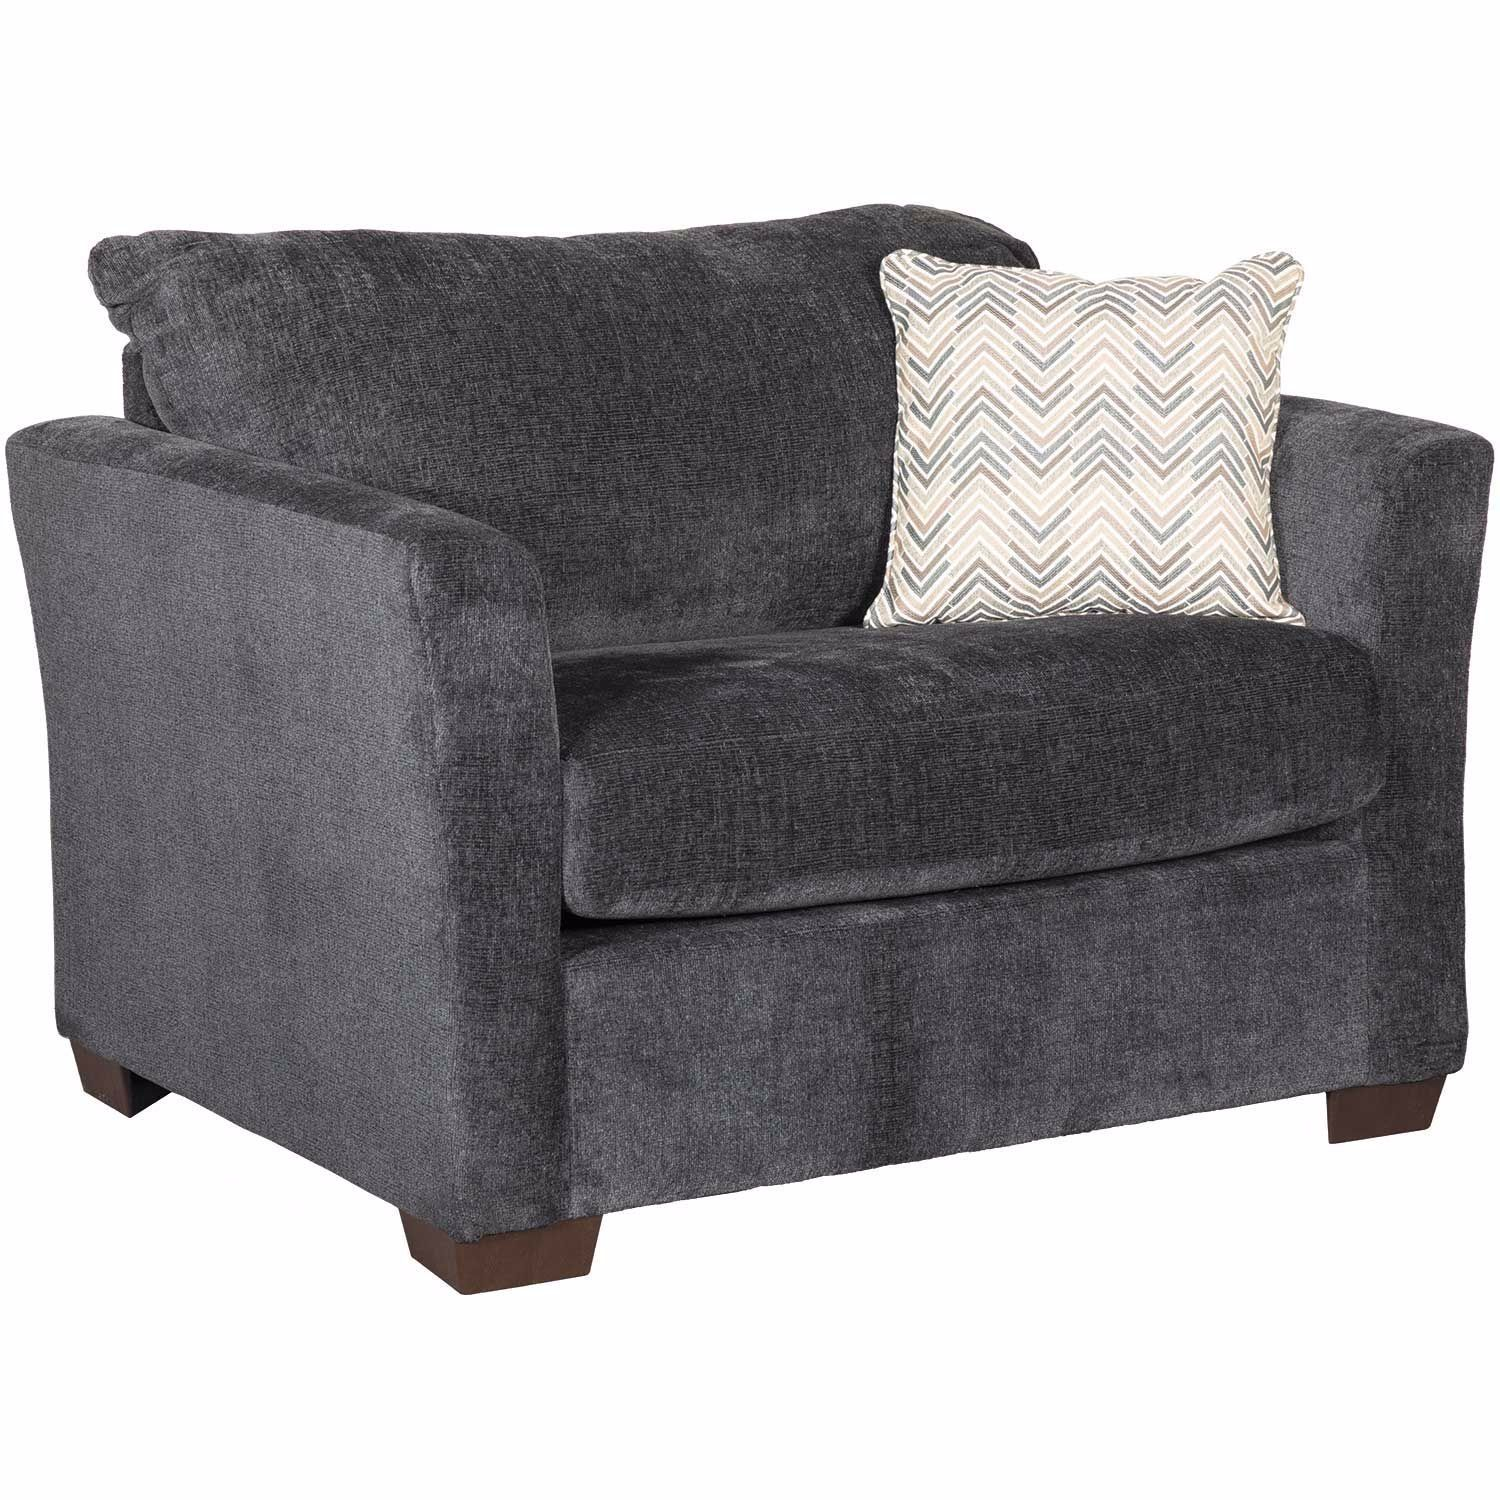 American Furniture Store Webster: Webster Slate Chair And A Half In 2020